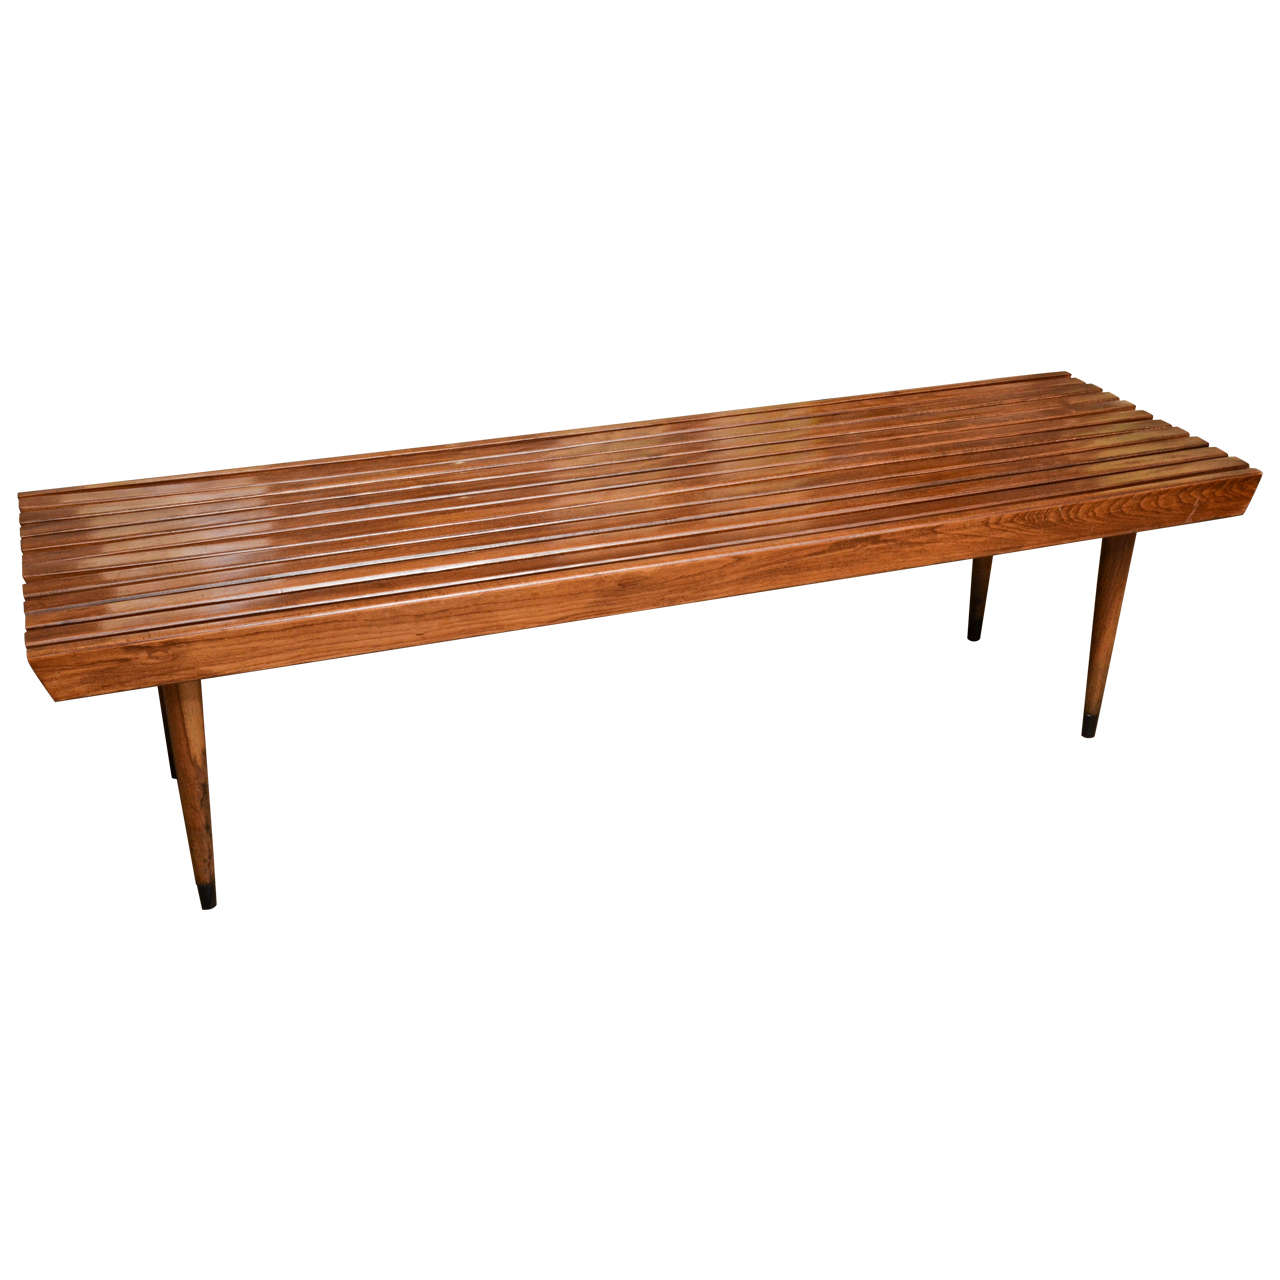 Tapered Coffee Table Legs Wood Slated Bench With Tapered Legs At 1stdibs